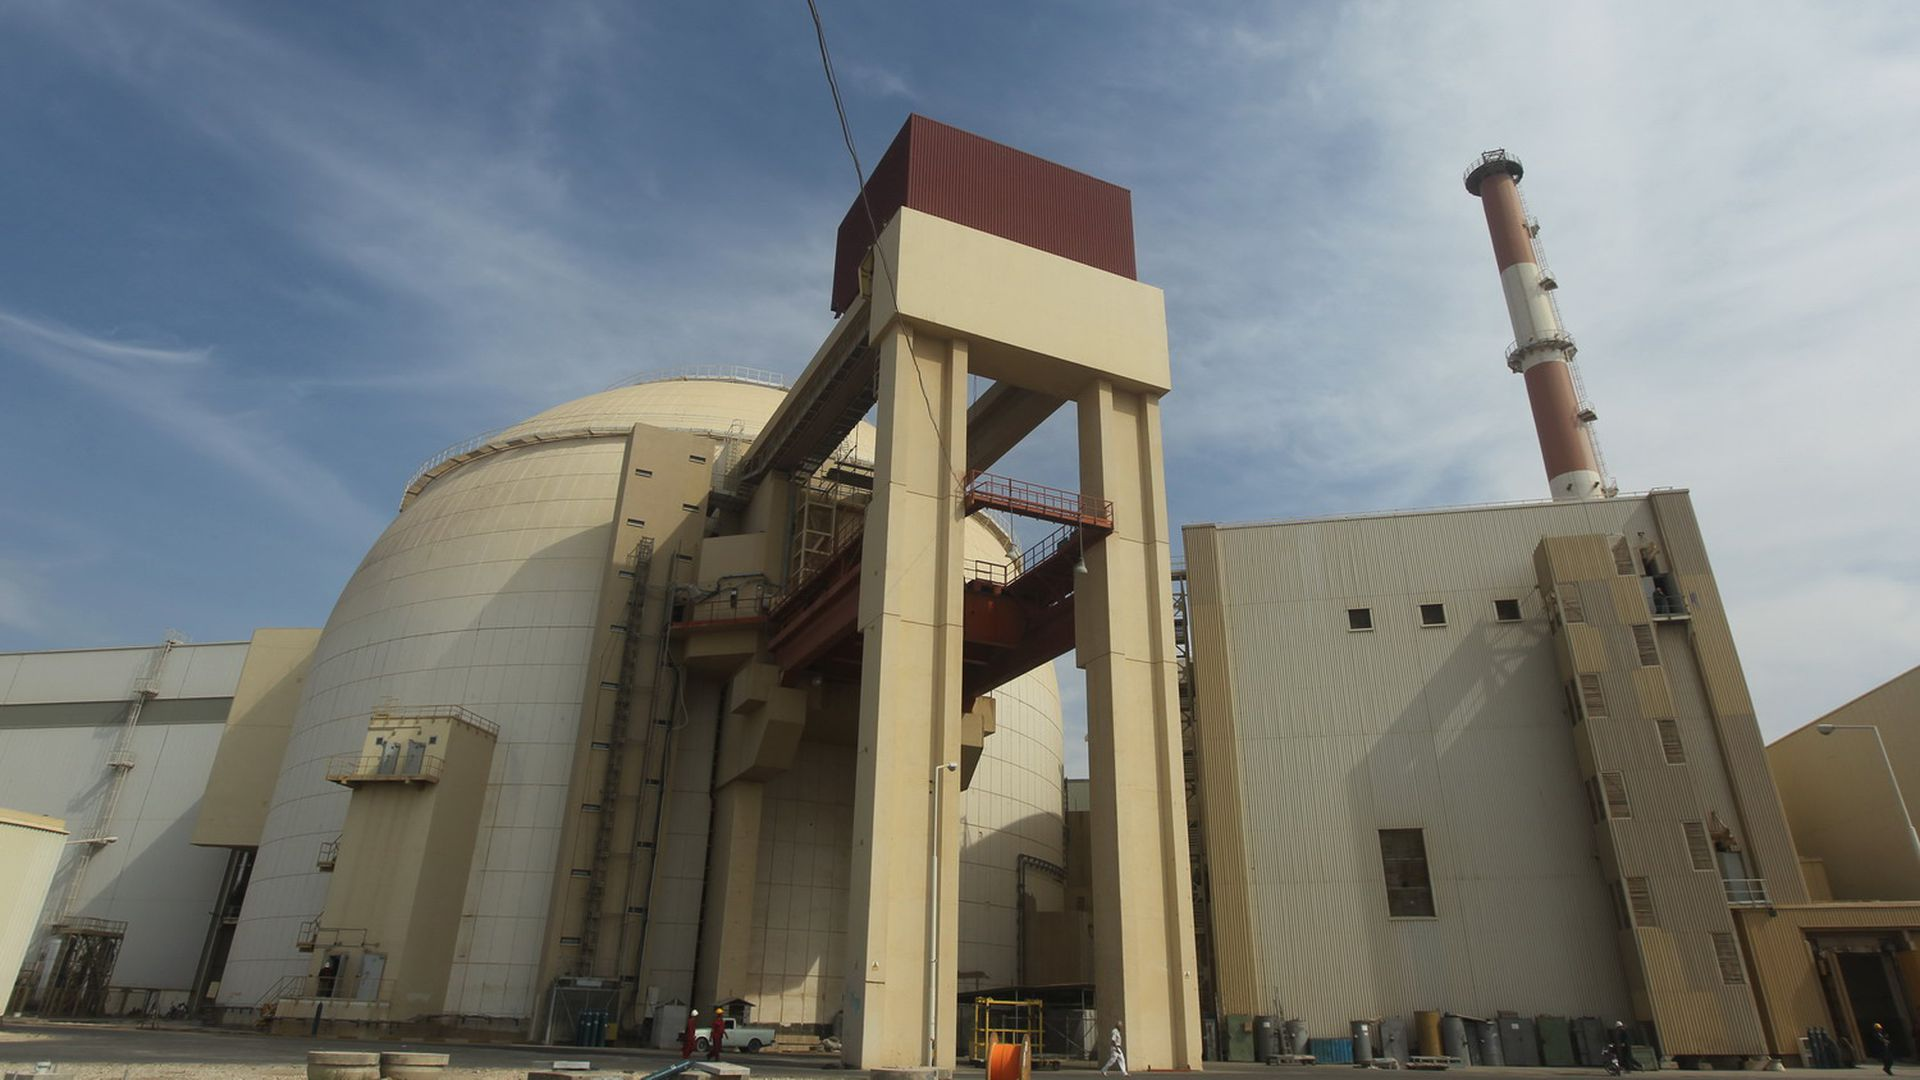 Reactor building of the Bushehr nuclear plant